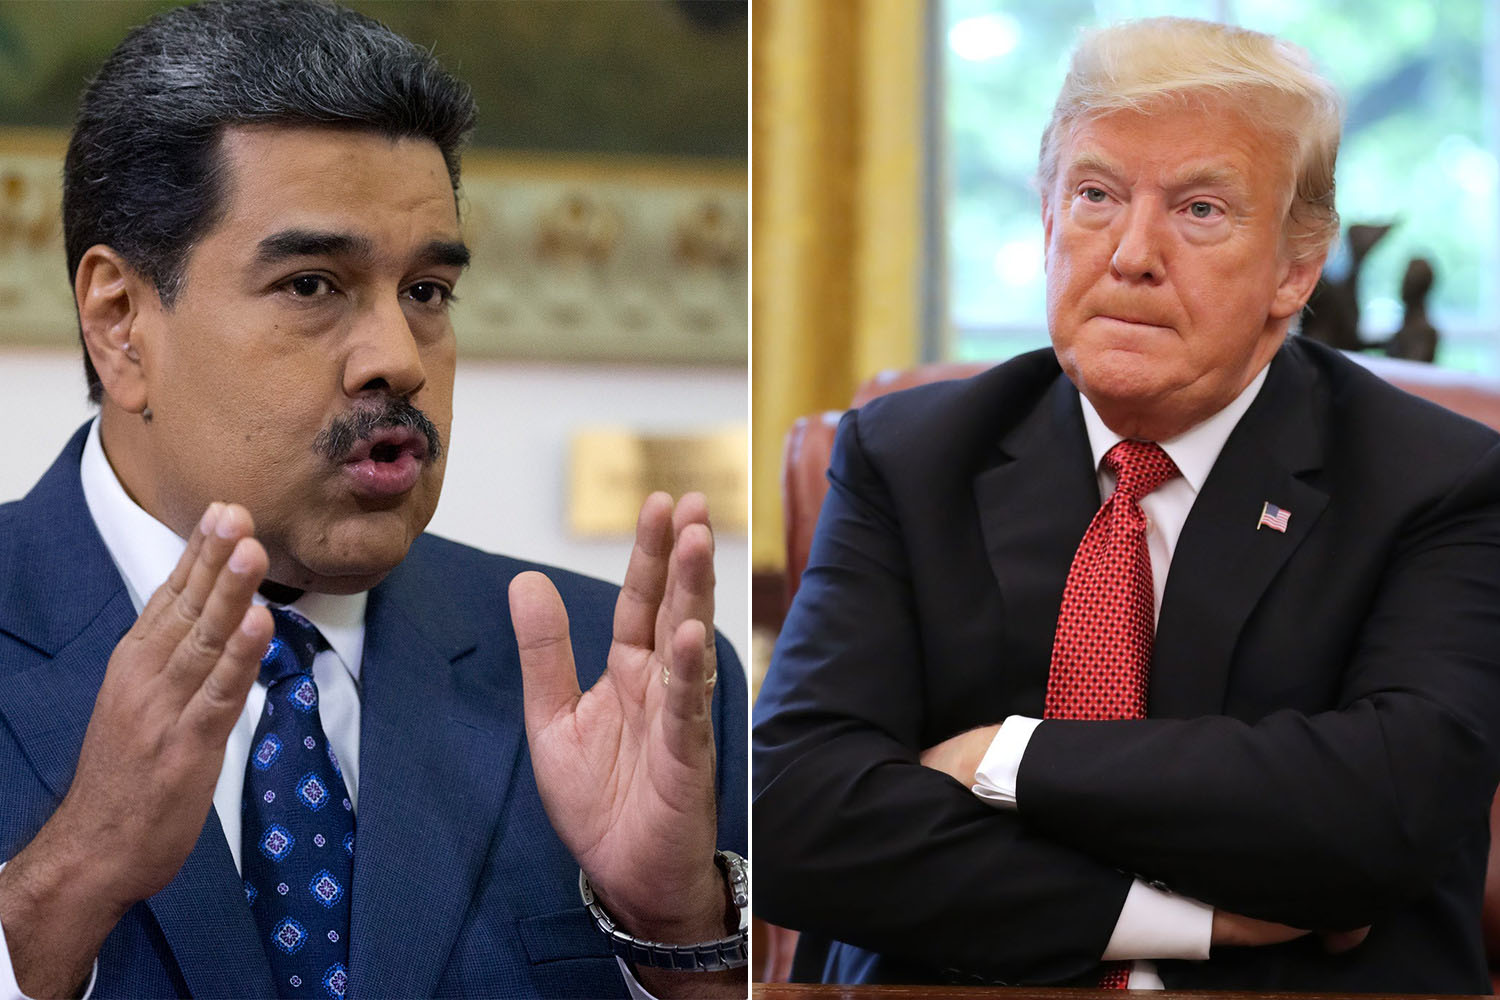 Nicolas Maduro President of Venezuela and Donald Trump - You guys are fired. We are firing both of you.